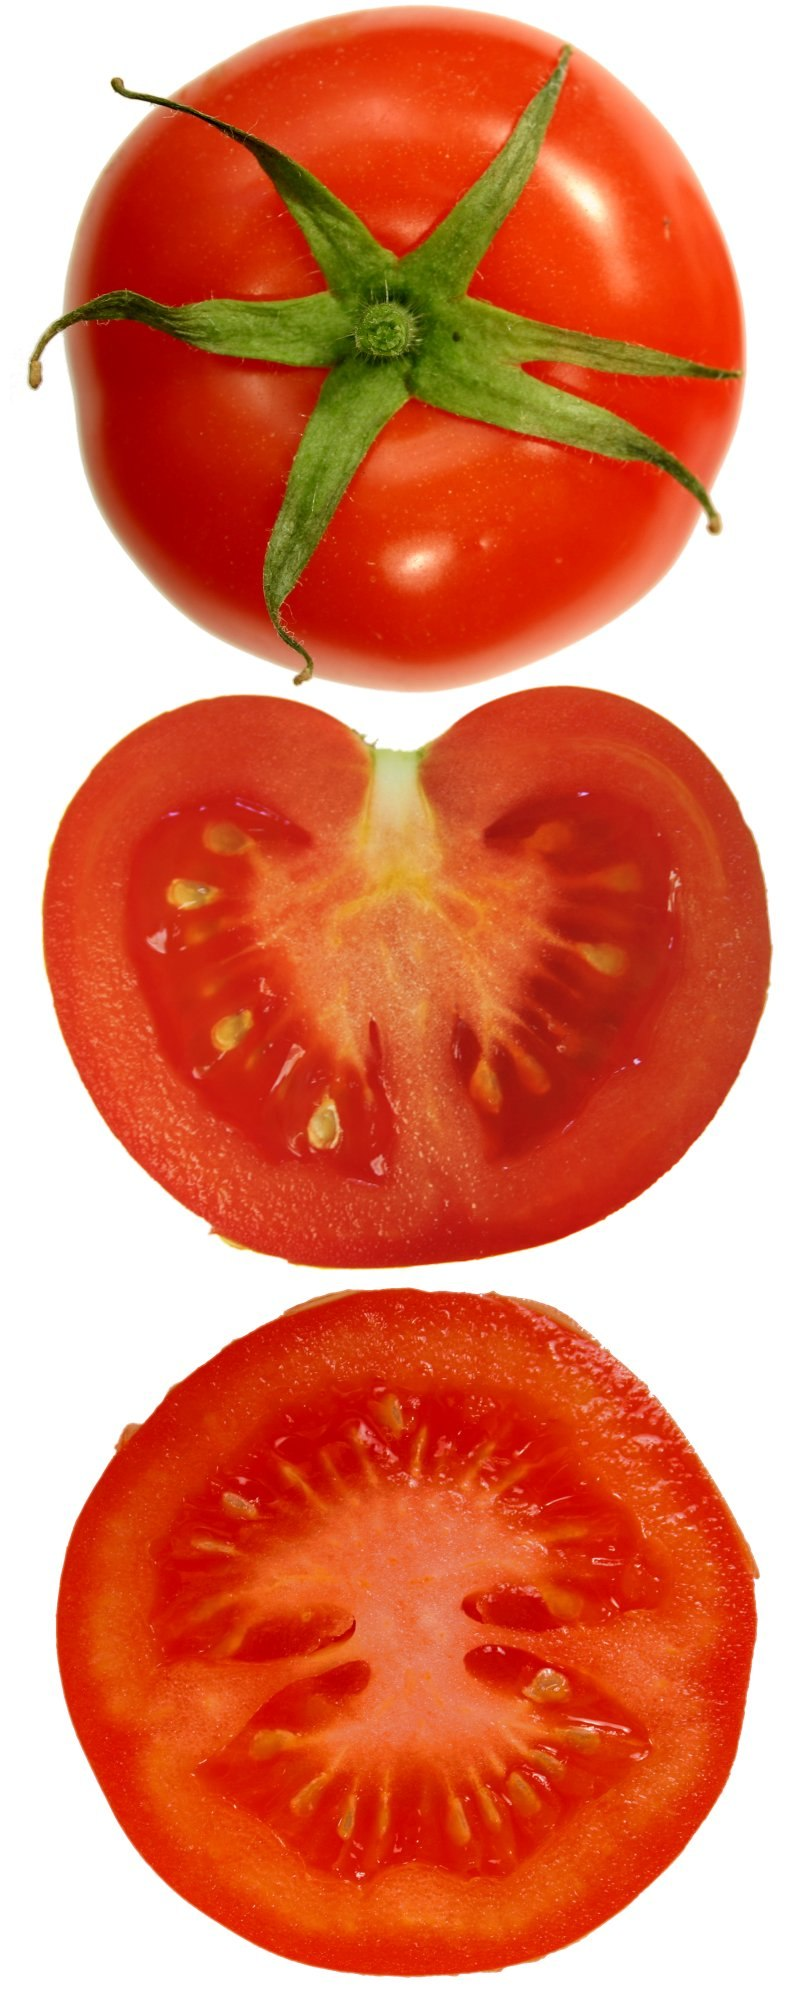 Tomatoes plain and sliced